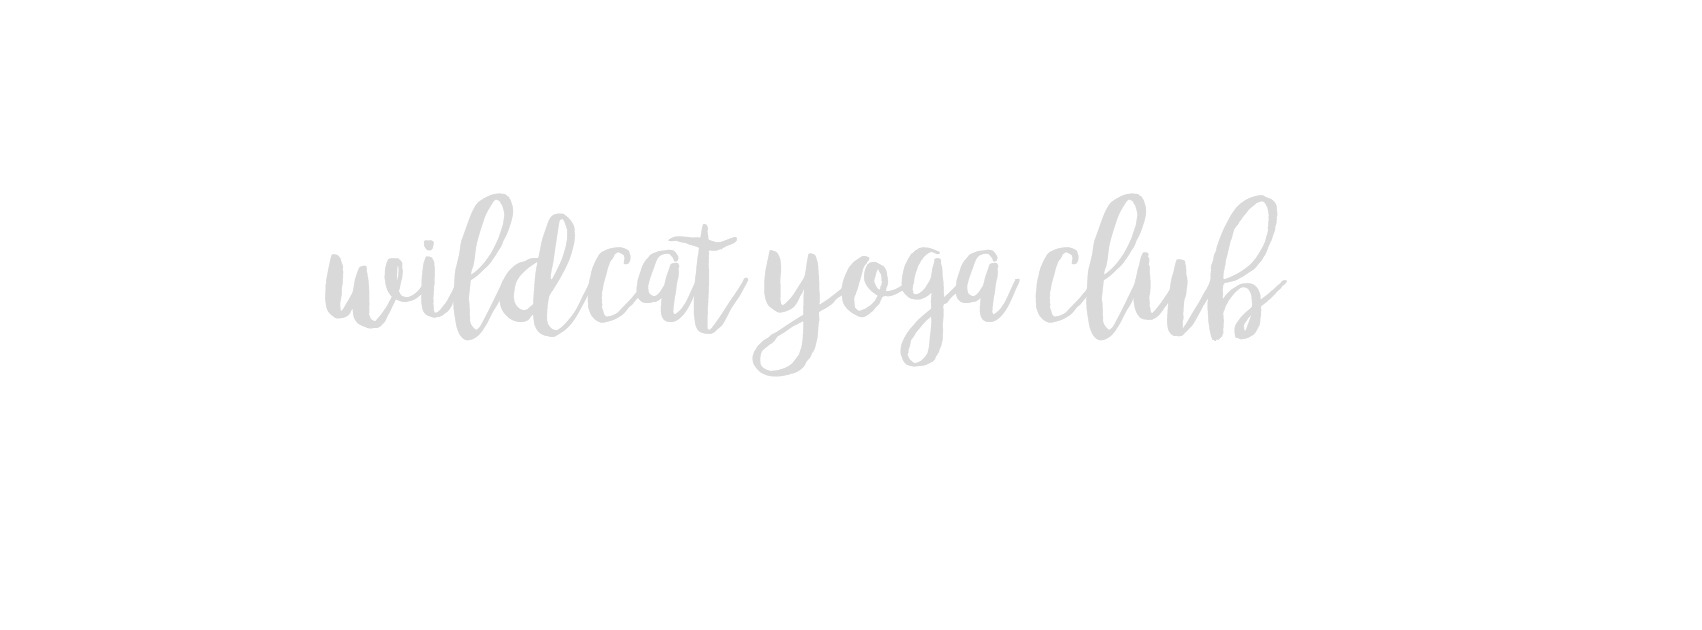 a yoga community committed to practice, study & connection.